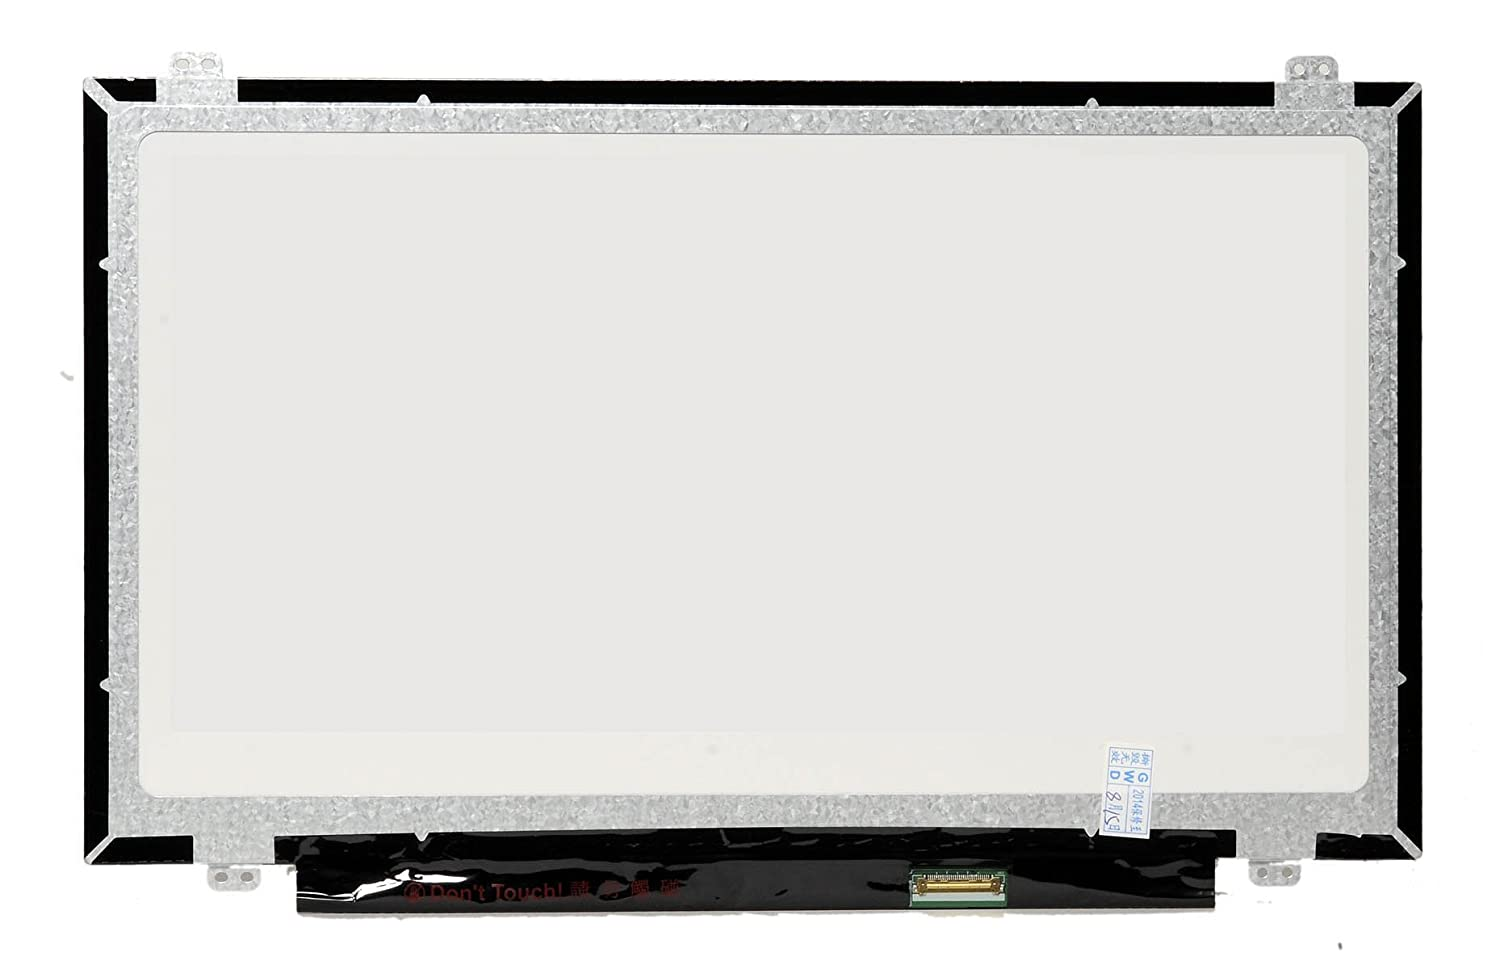 LEPUS-TECH New LCD Panel for ACER Aspire ONE CLOUDBOOK AO1-431-C8G8 LCD Screen 14.0 1366X768 Slim HD